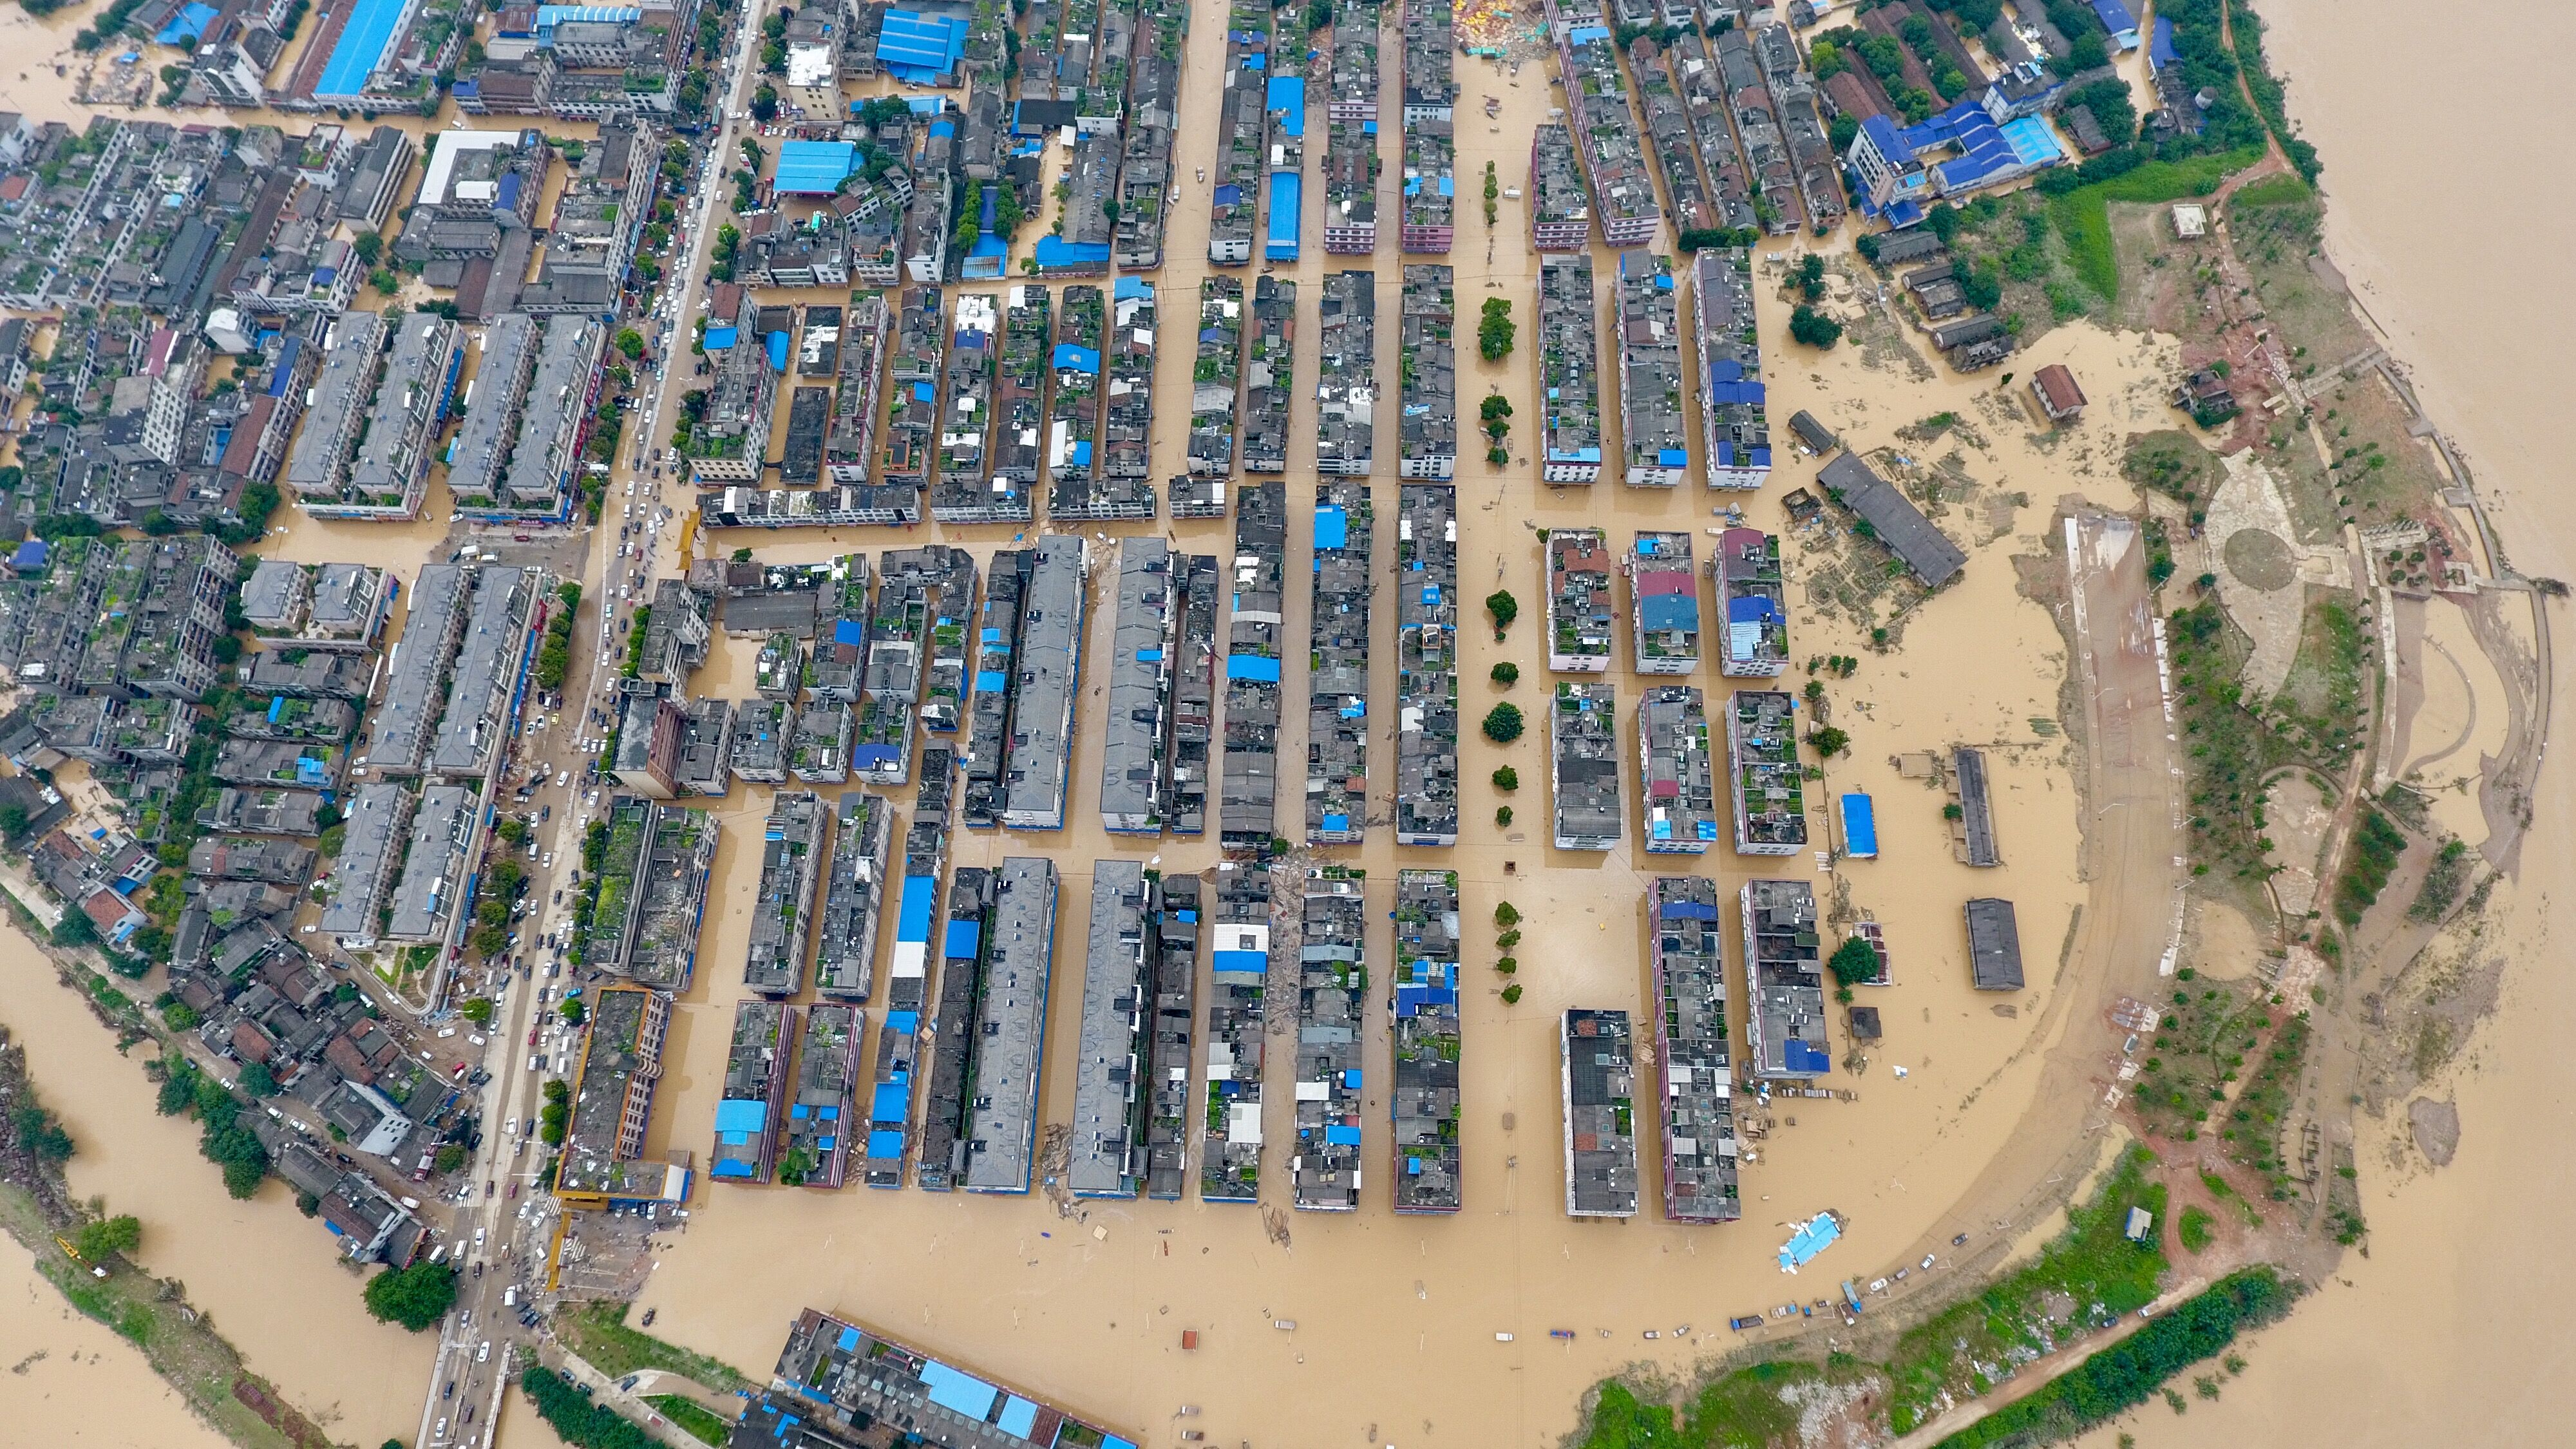 44 dead or missing in flood-stricken Chinese county